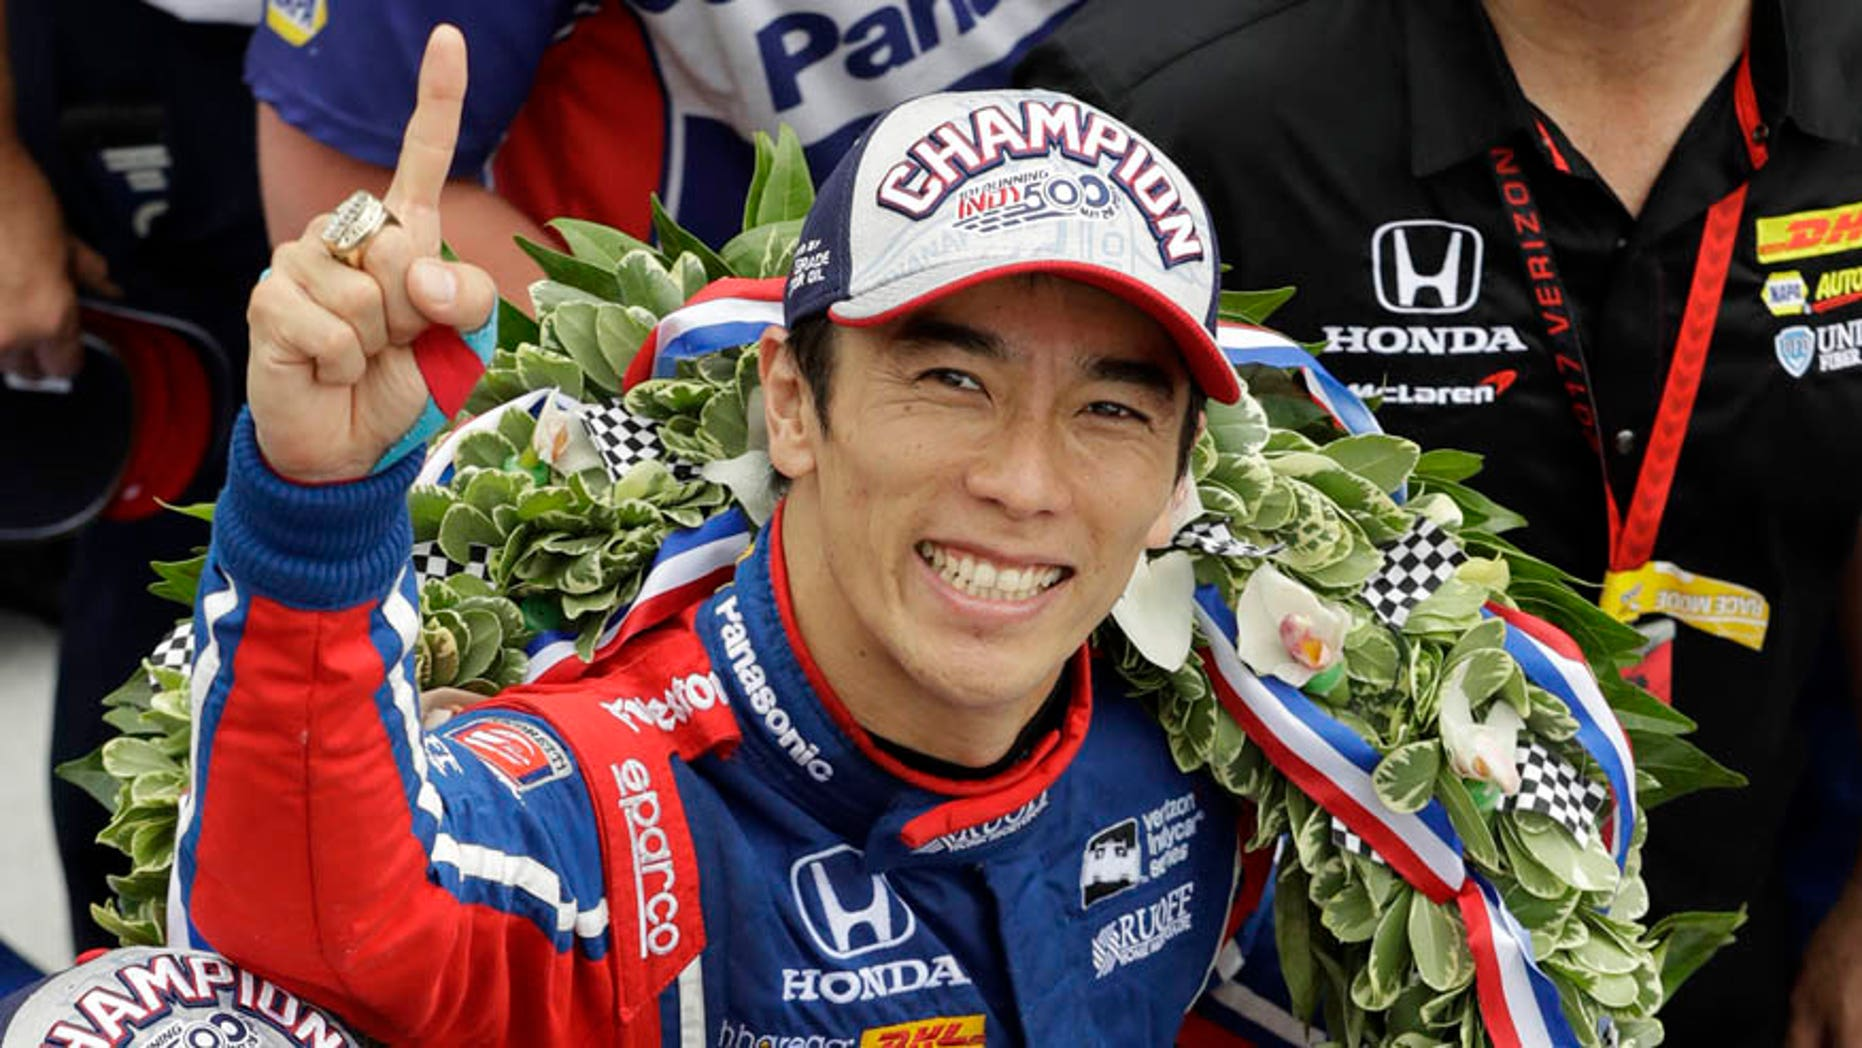 May 28, 2017: Takuma Sato, center, of Japan, celebrates after winning the Indianapolis 500 auto race at Indianapolis Motor Speedway in Indianapolis.